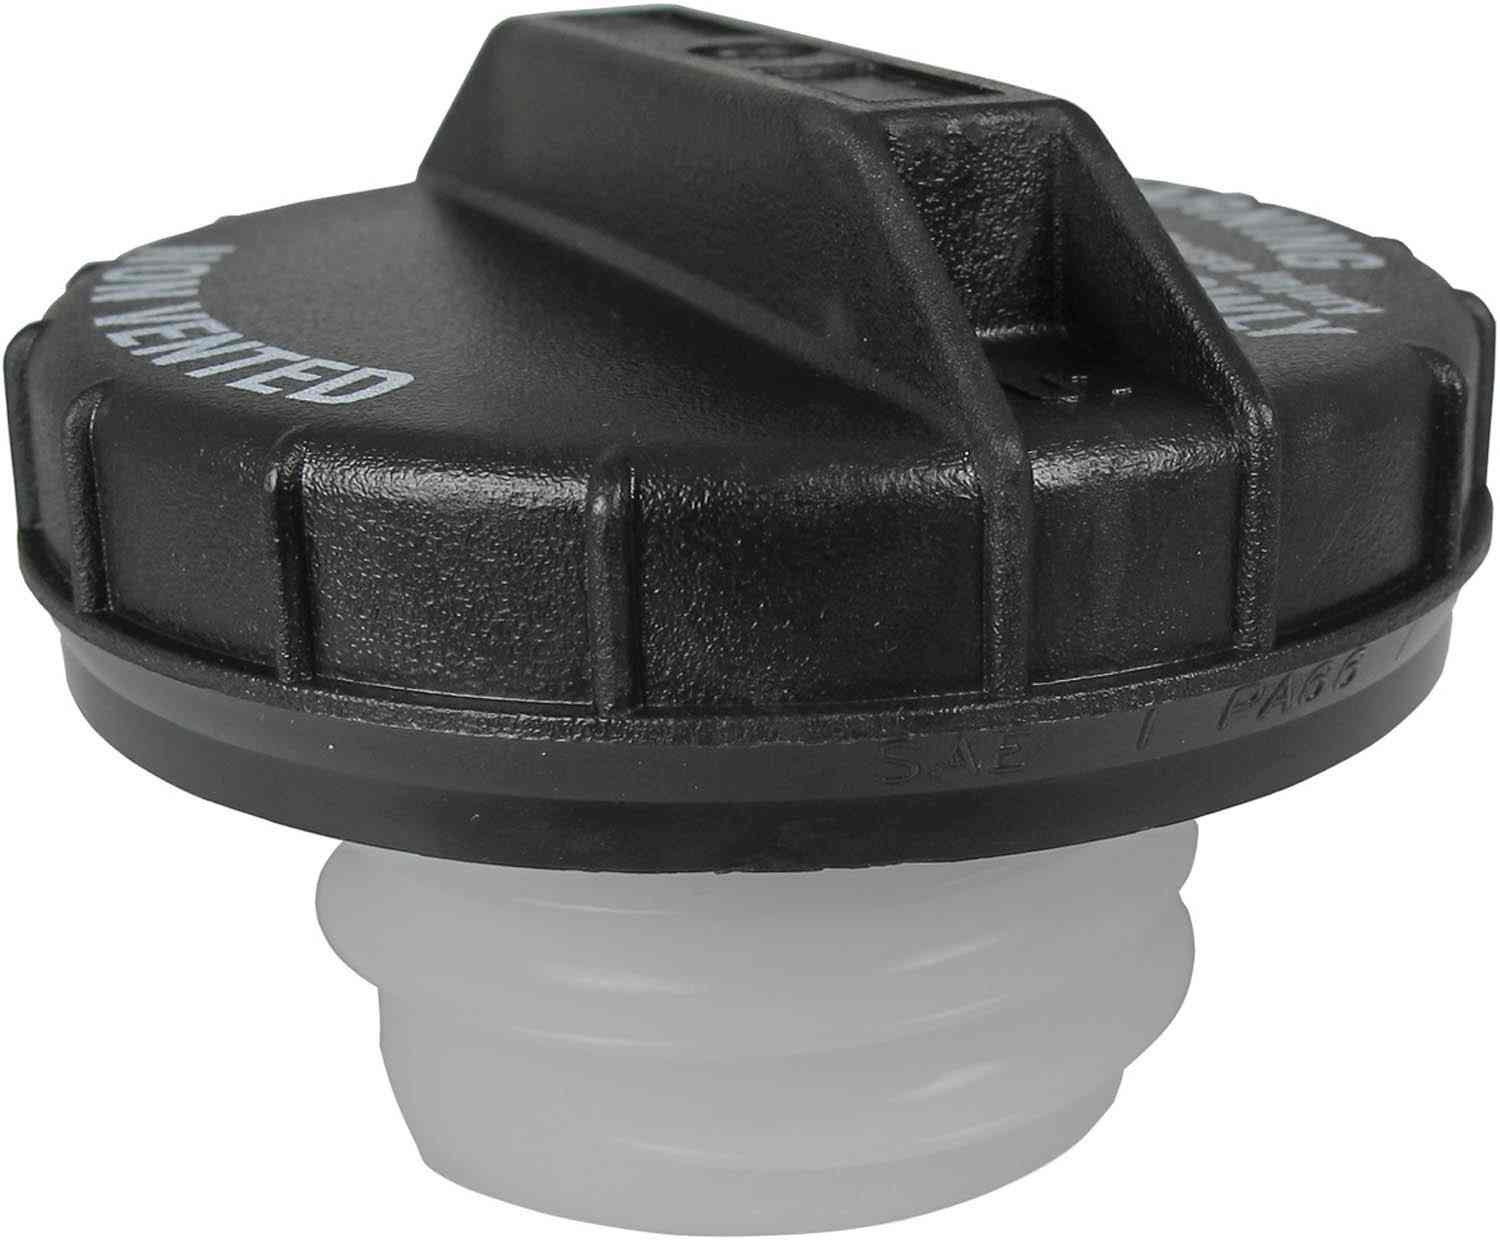 ACDELCO GOLD/PROFESSIONAL - Fuel Tank Cap - DCC 12F52